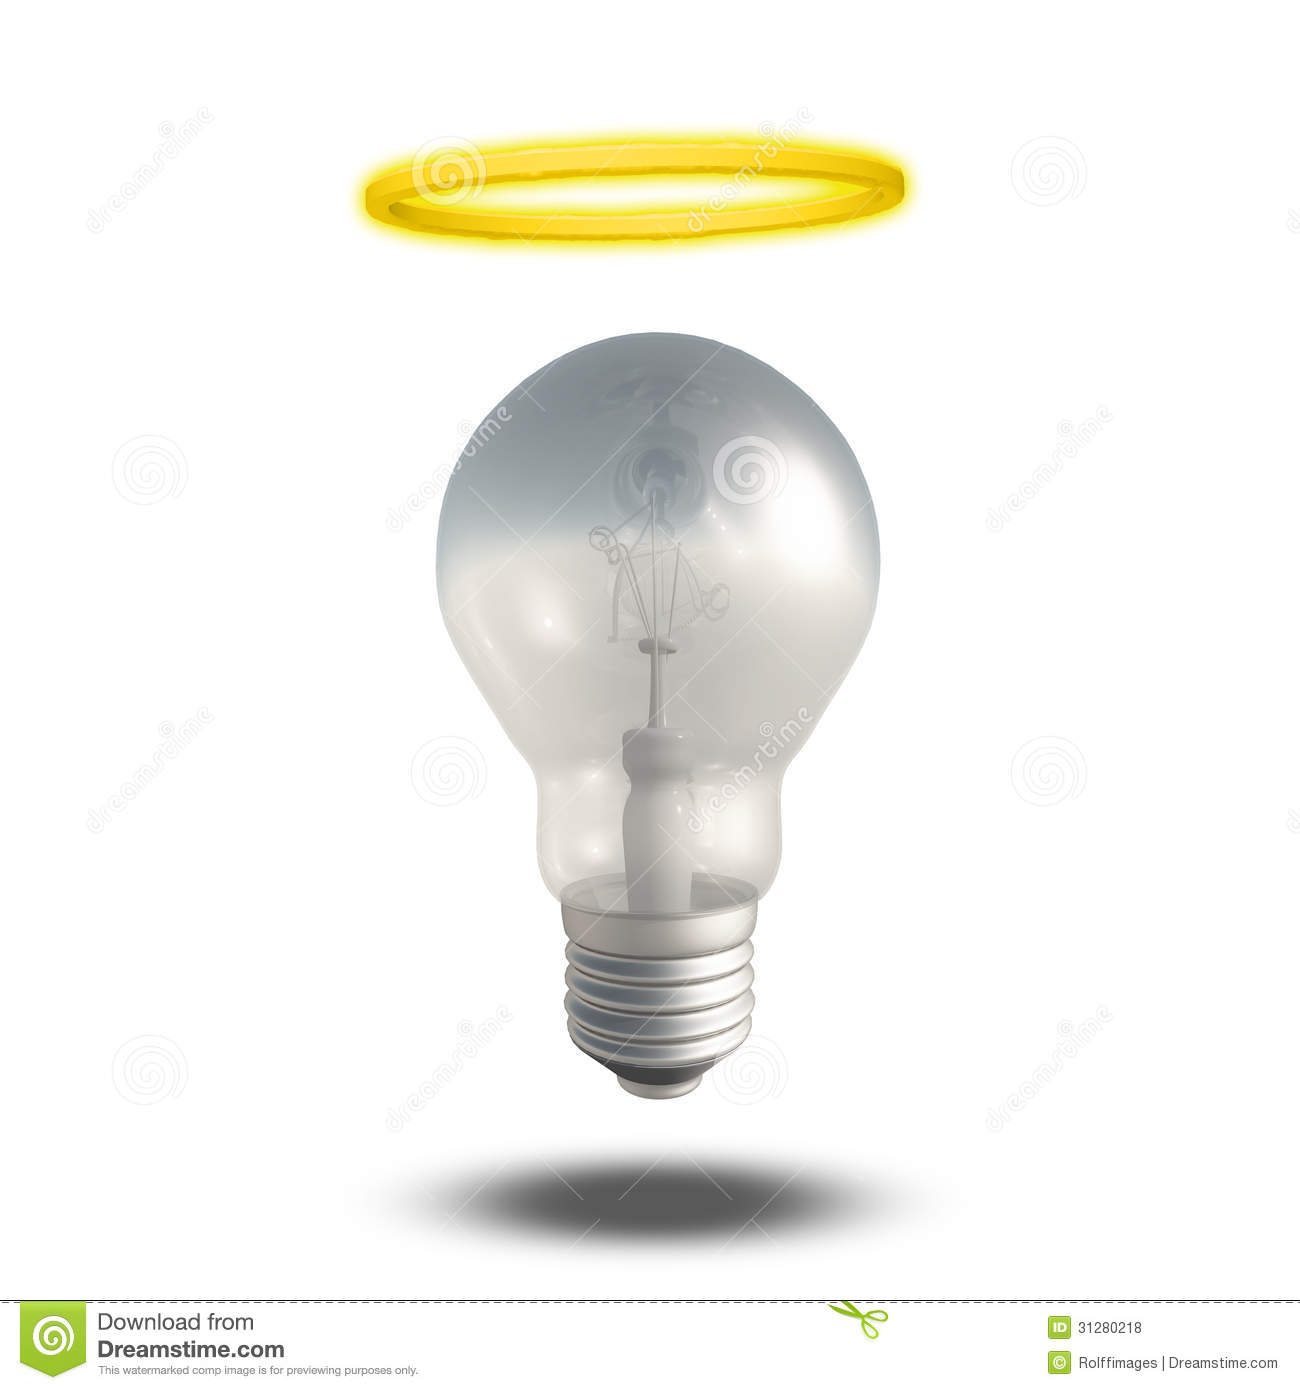 Light Bulb Good Idea Pictures to Pin on Pinterest - PinsDaddy